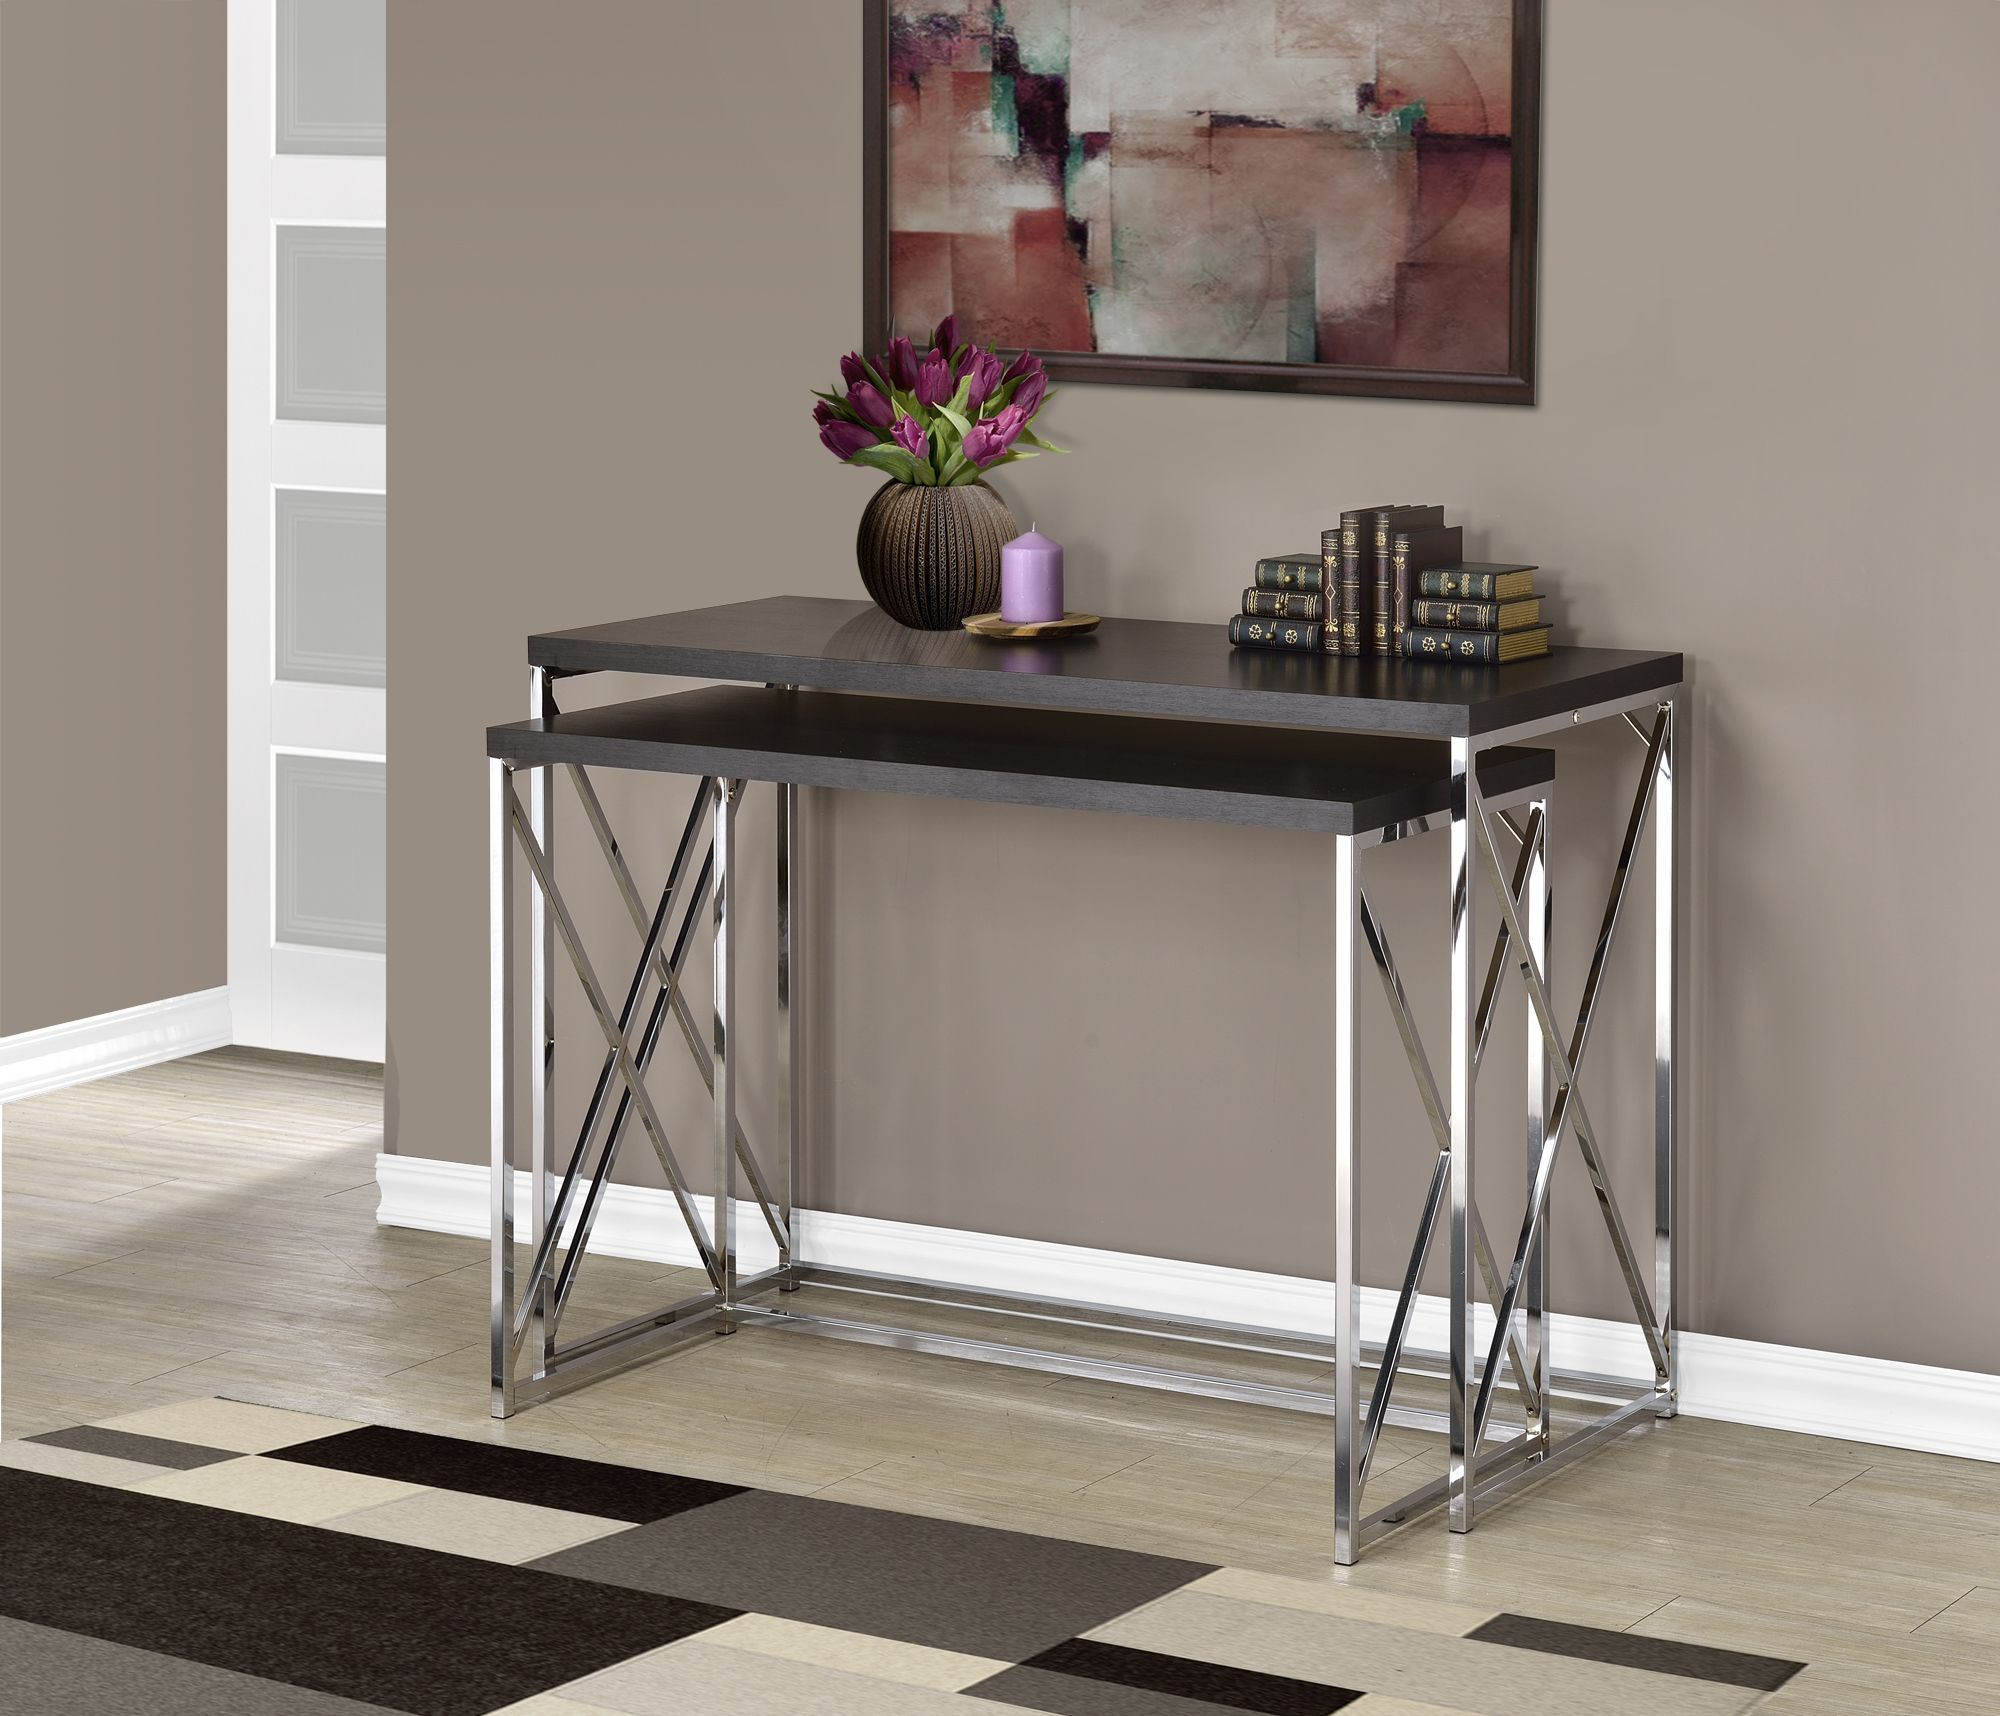 Monarch Specialties Console Table   2PCS / Cappuccino With Chrome Metal,  Brown